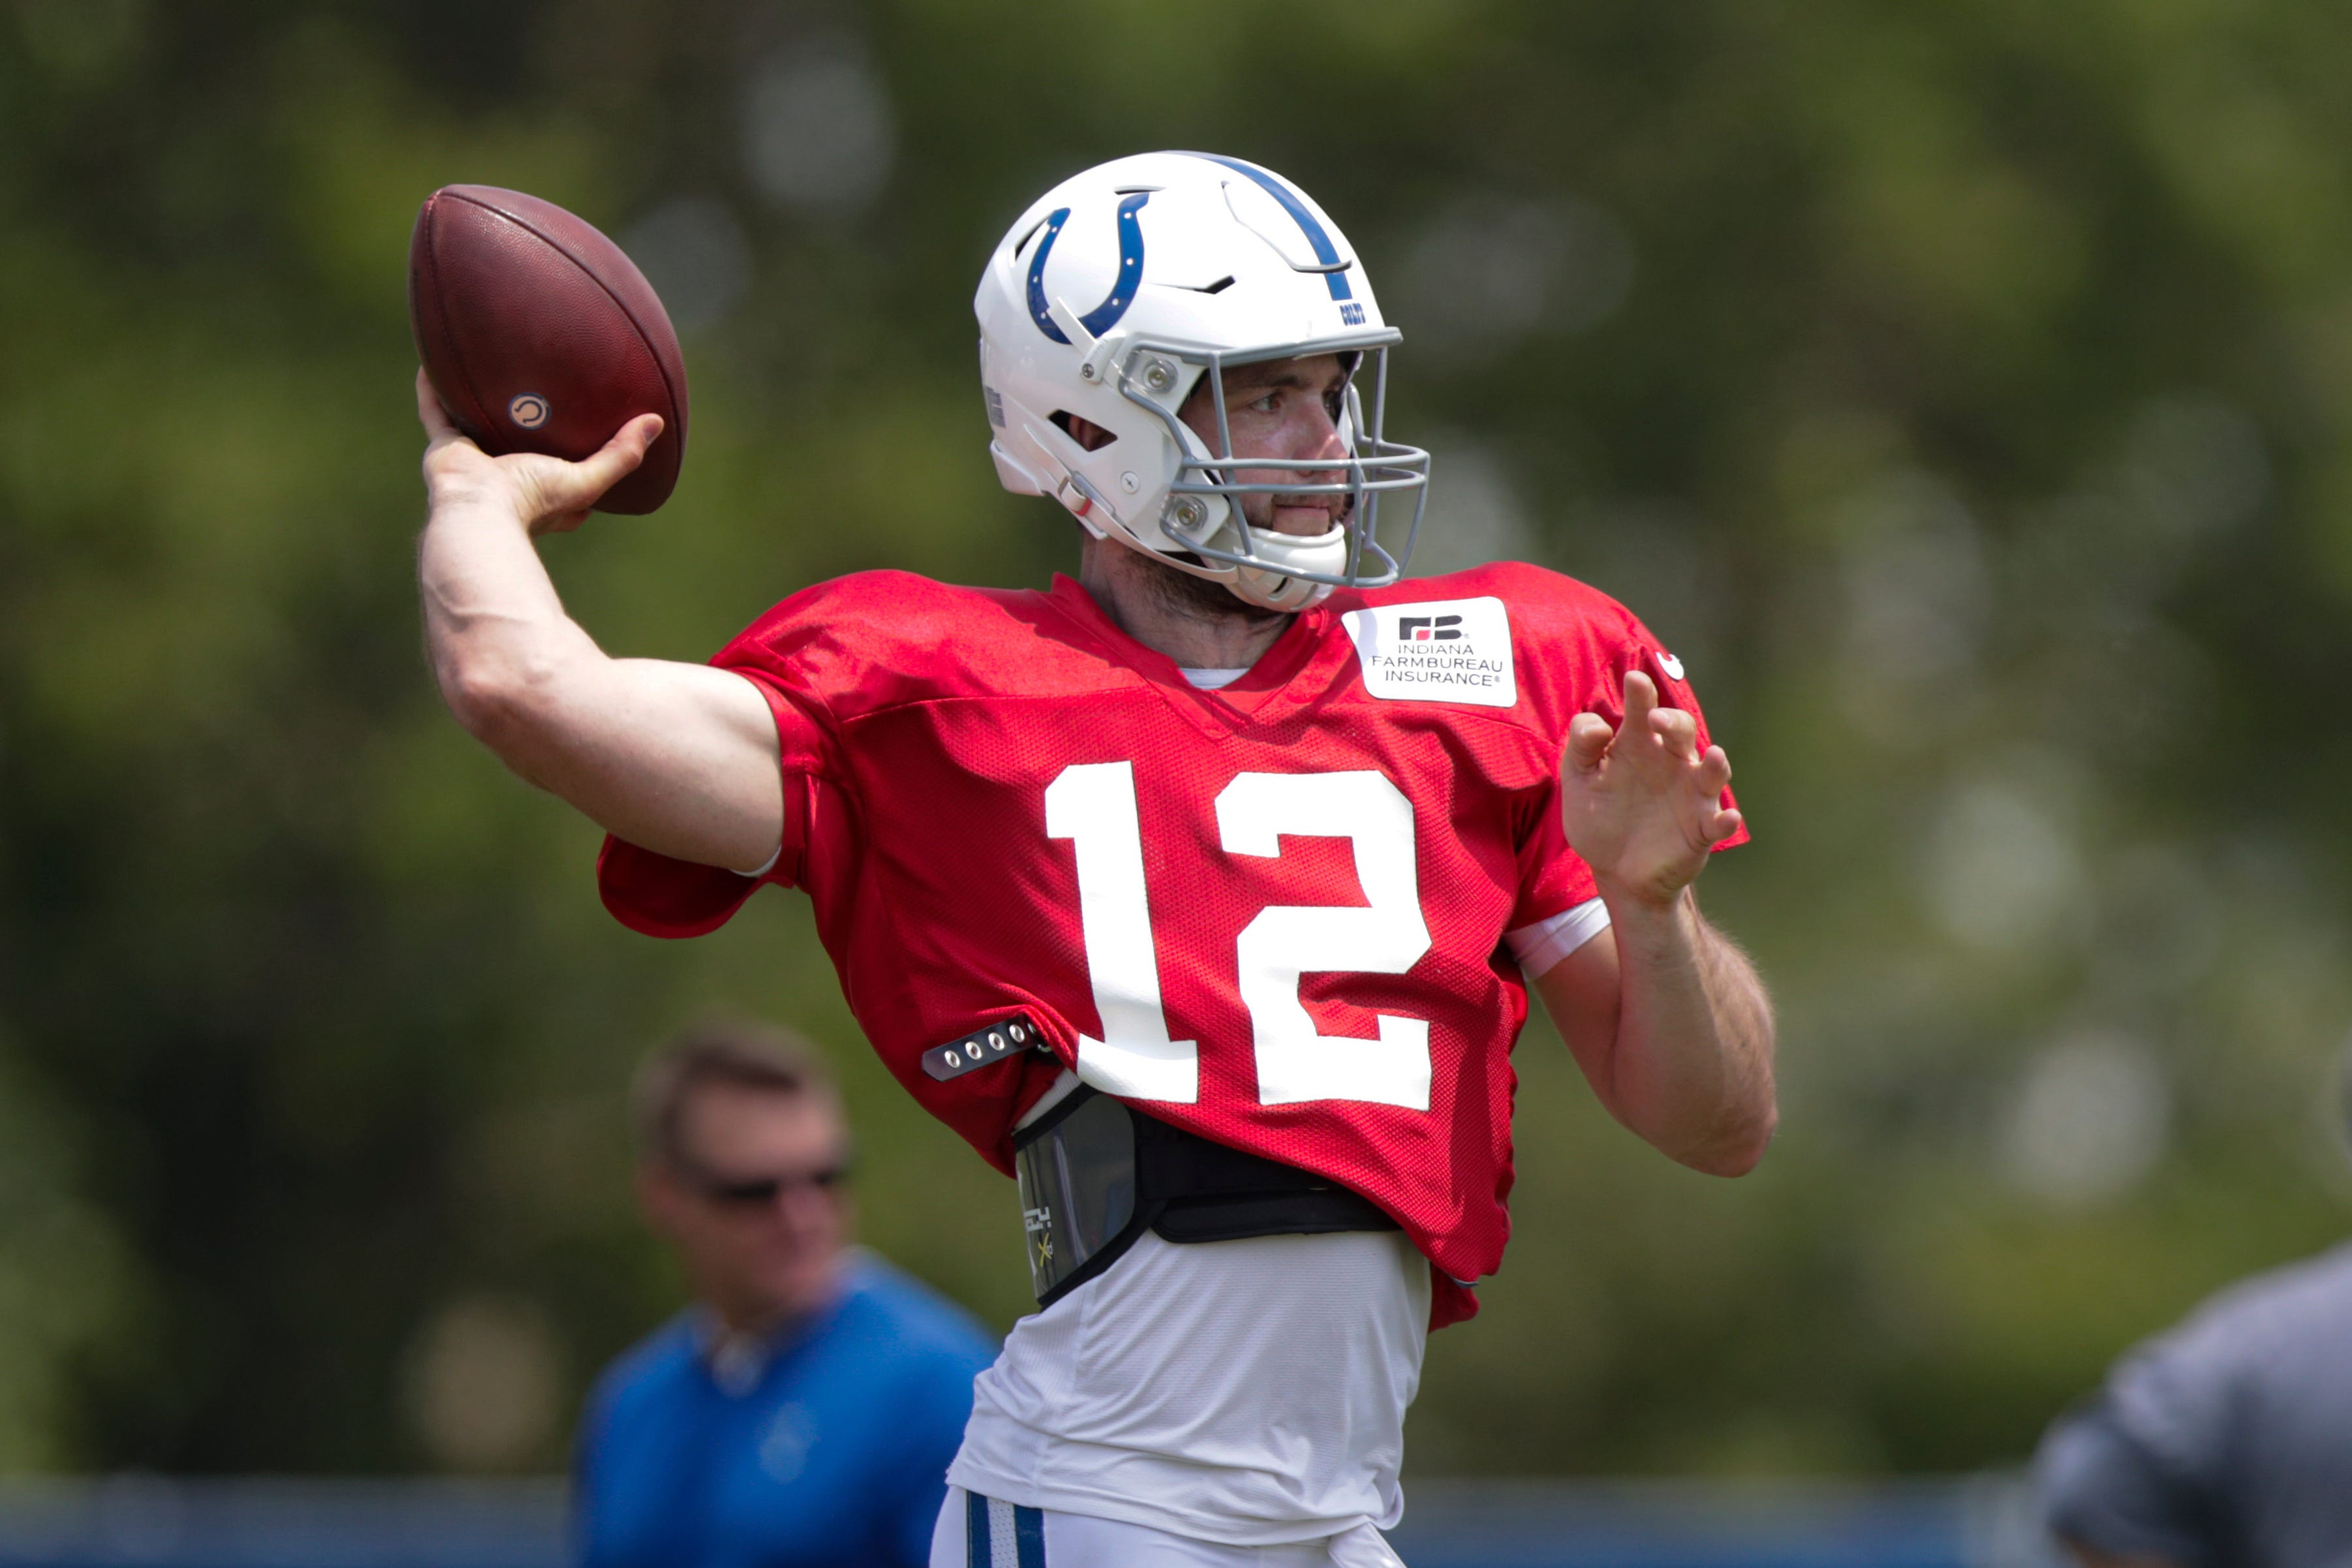 Luck to miss next 2 practices, Colts preseason opener